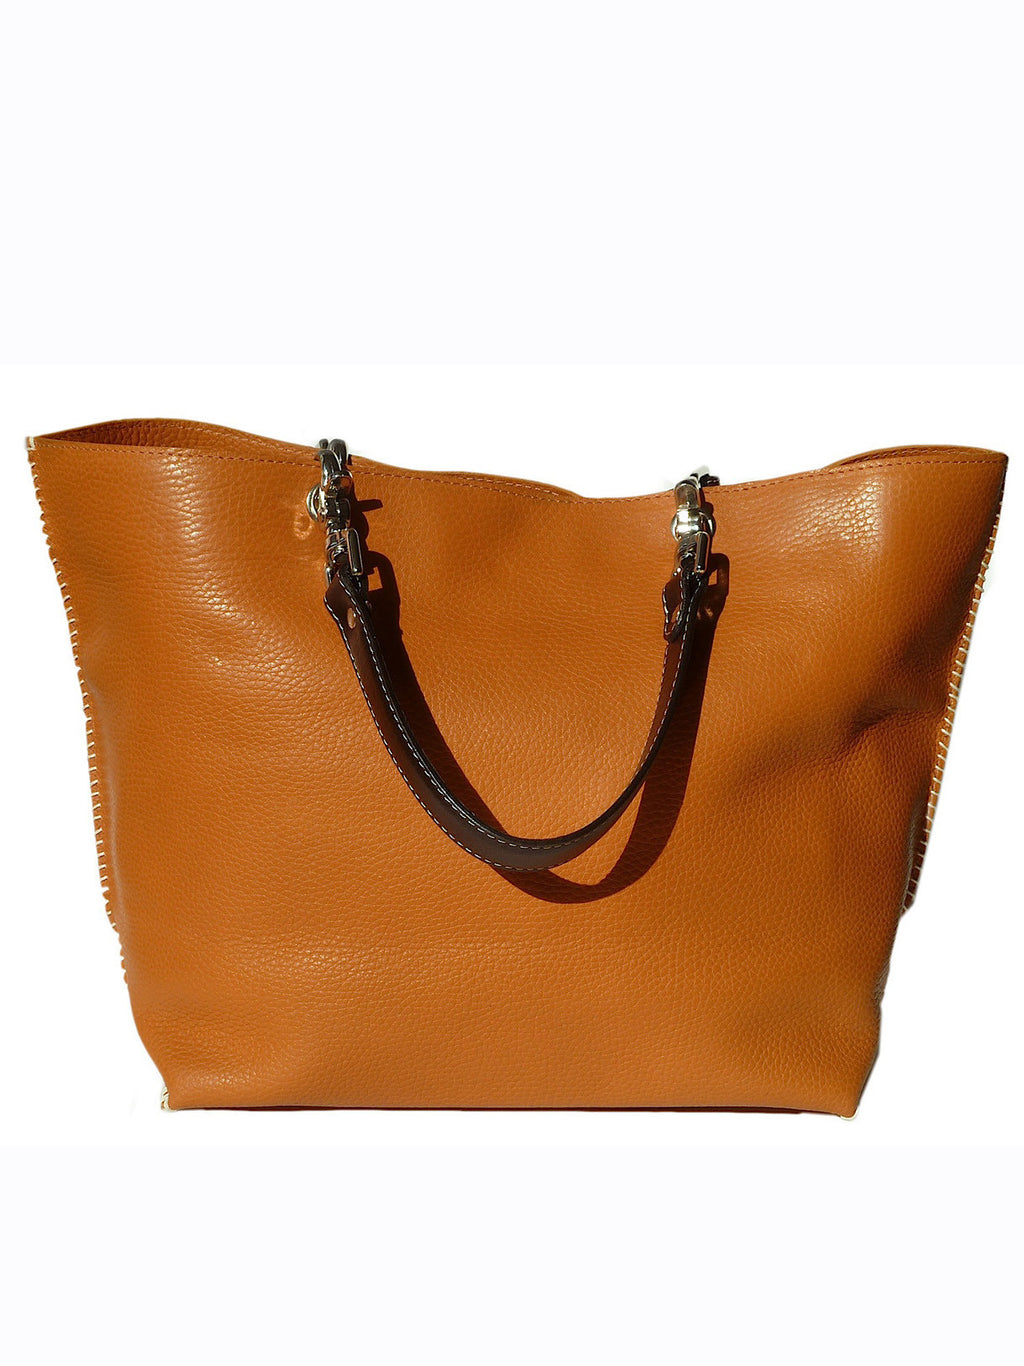 Gamidi 2 Tote In Pebble Grain Leather